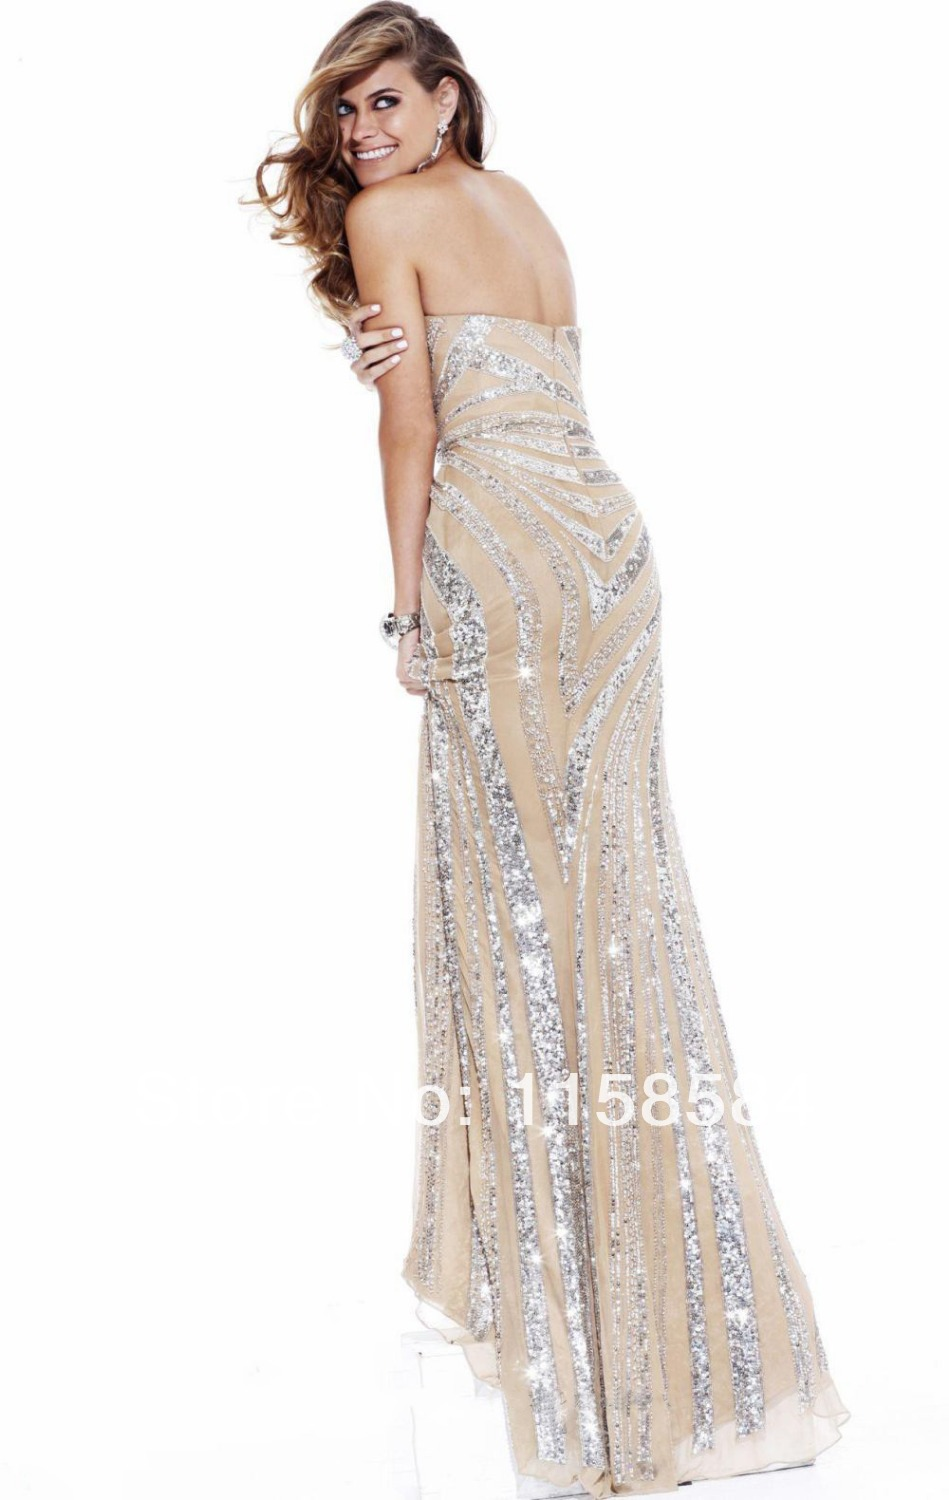 Fantastic Evening Gown Rental Nyc Illustration - Wedding and flowers ...